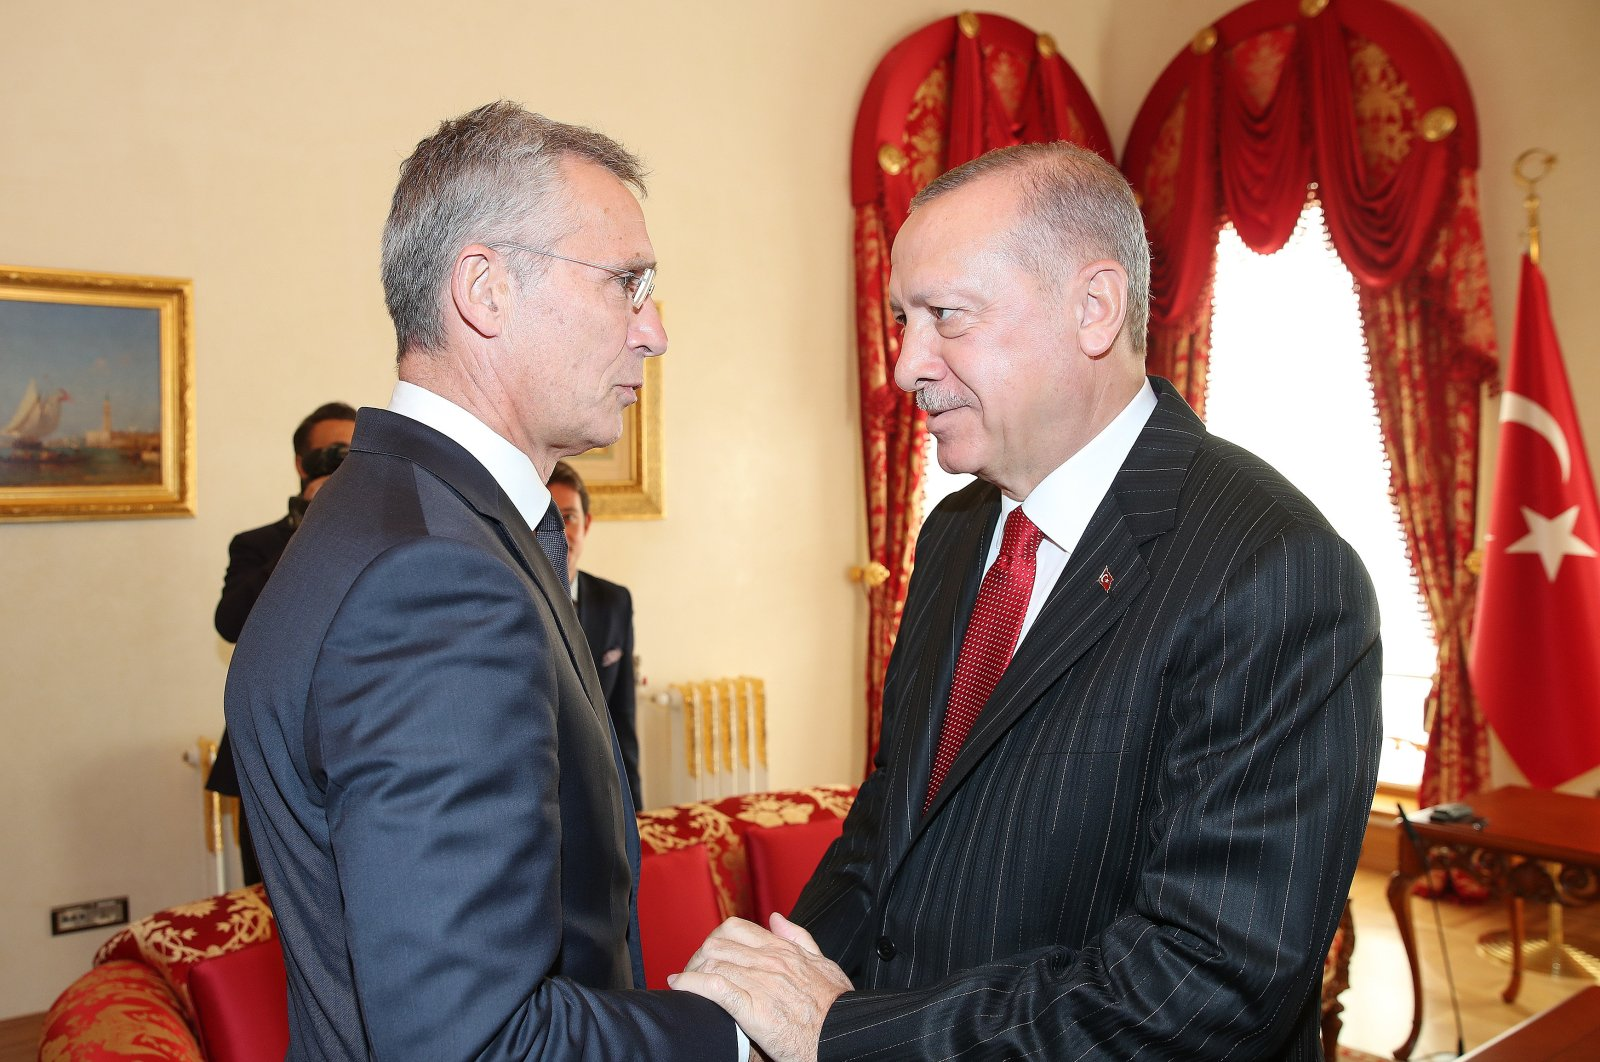 President Recep Tayyip Erdoğan (right) and NATO Secretary-General Jens Stoltenberg in this undated picture. (AA Photo)